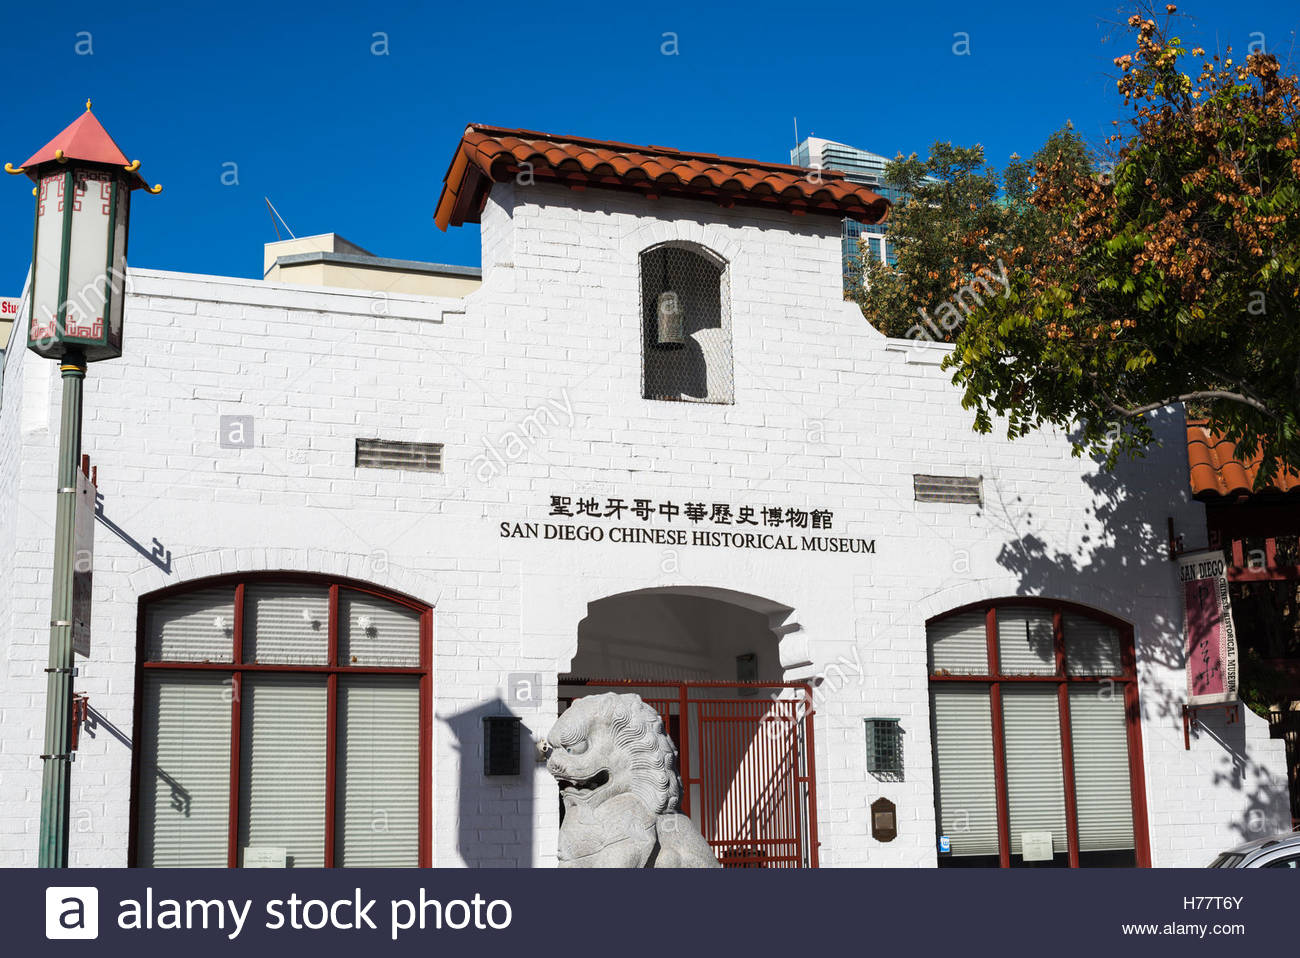 San Diego Visitor Information Center San Diego, San Diego Chinese Historical Museum building. San Diego ...